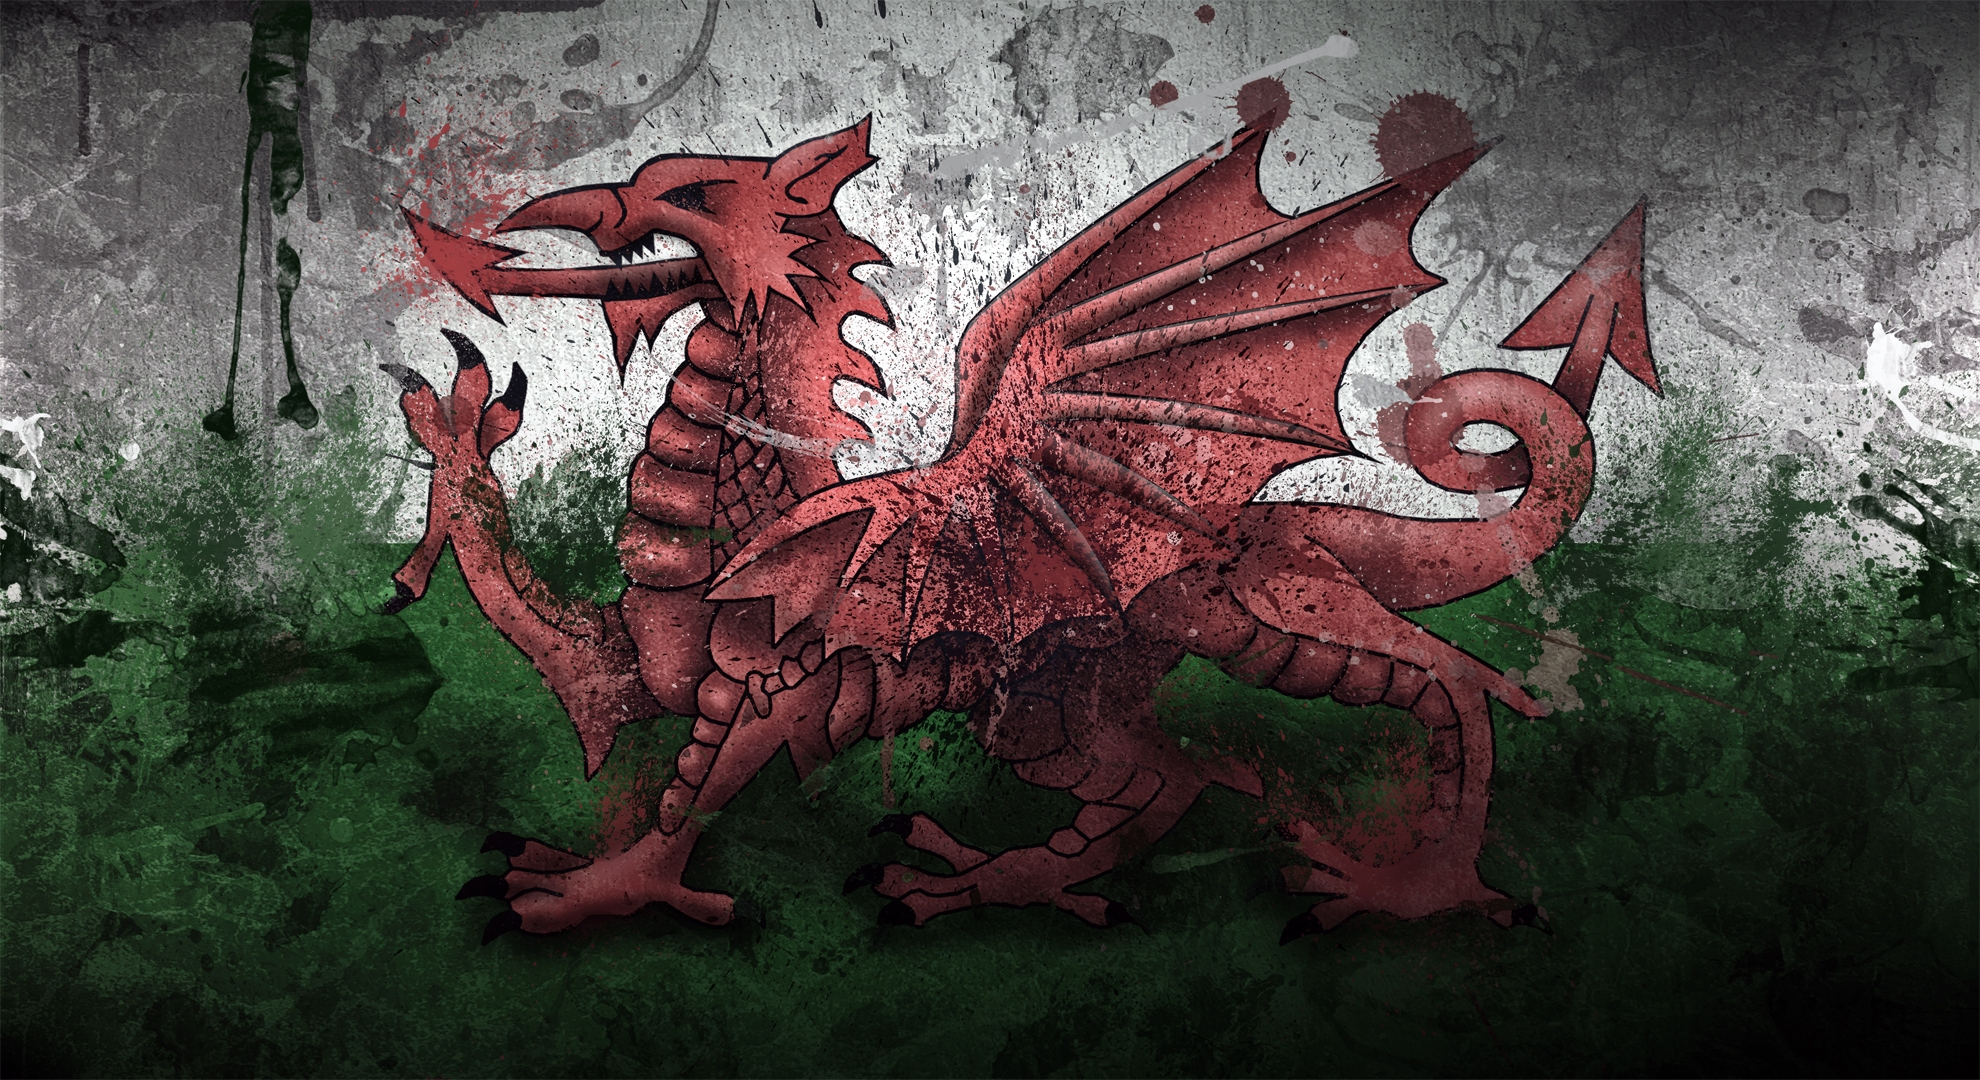 Wales Dragon Symbol Flag Paints Stains Texture   Stock Photos 1980x1080